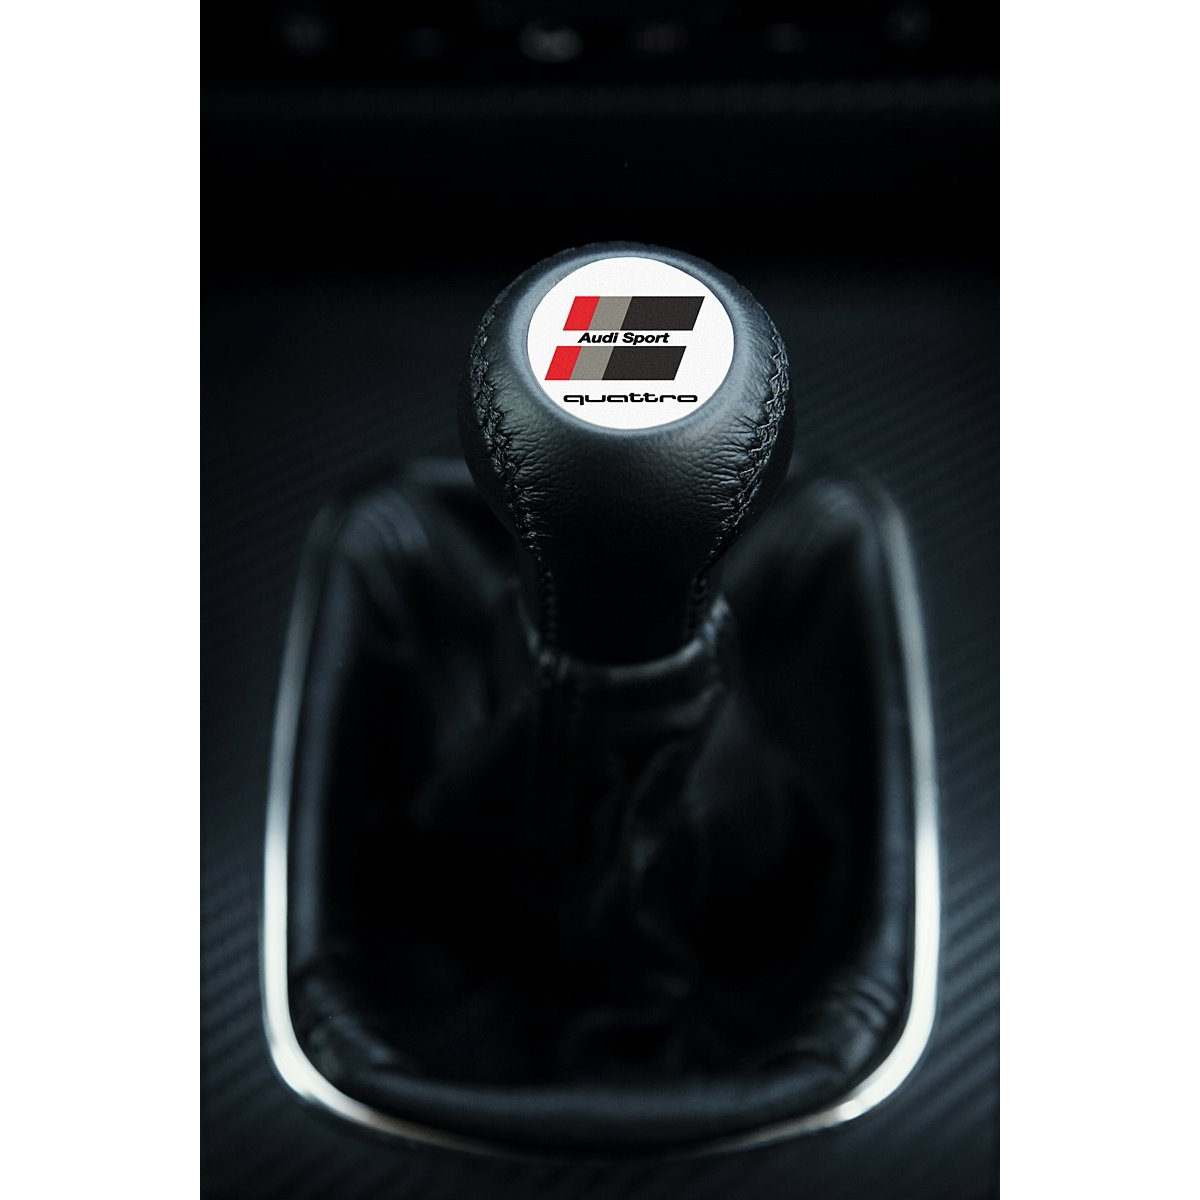 Premium Edition Gear Knob Knob Black Silver Leather 6-gear for Audi A3 S3 8L